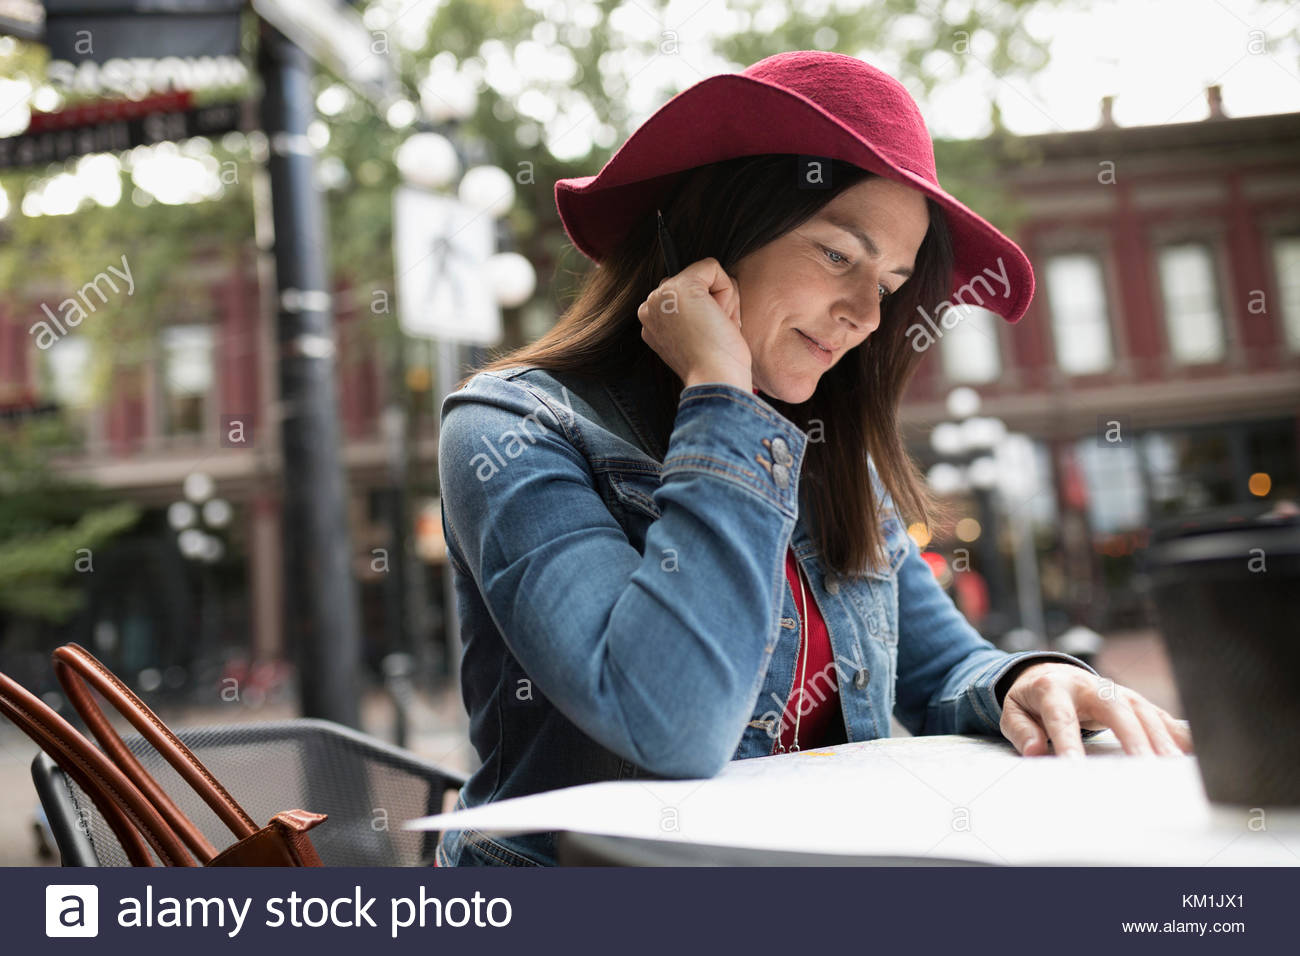 Mature Woman in hat looking at map at sidewalk cafe urbain Photo Stock